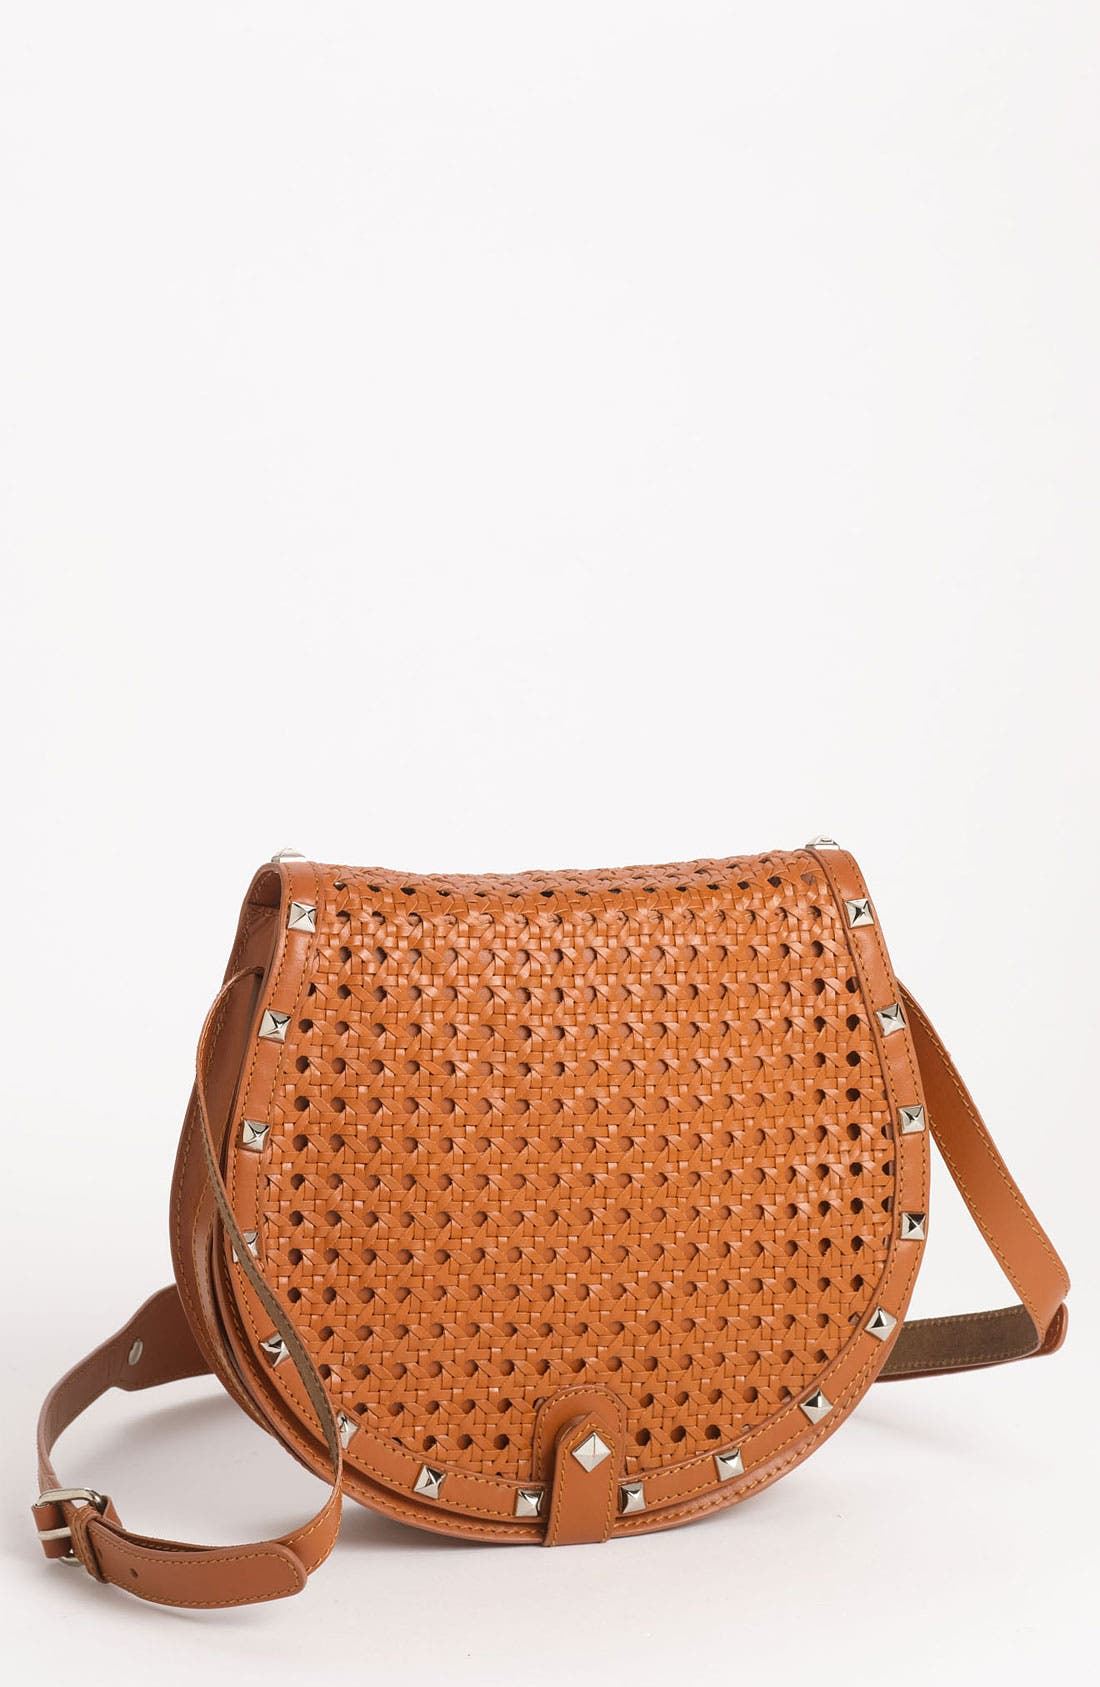 Main Image - Rebecca Minkoff 'Skylar - Wicker Woven' Leather Crossbody Bag